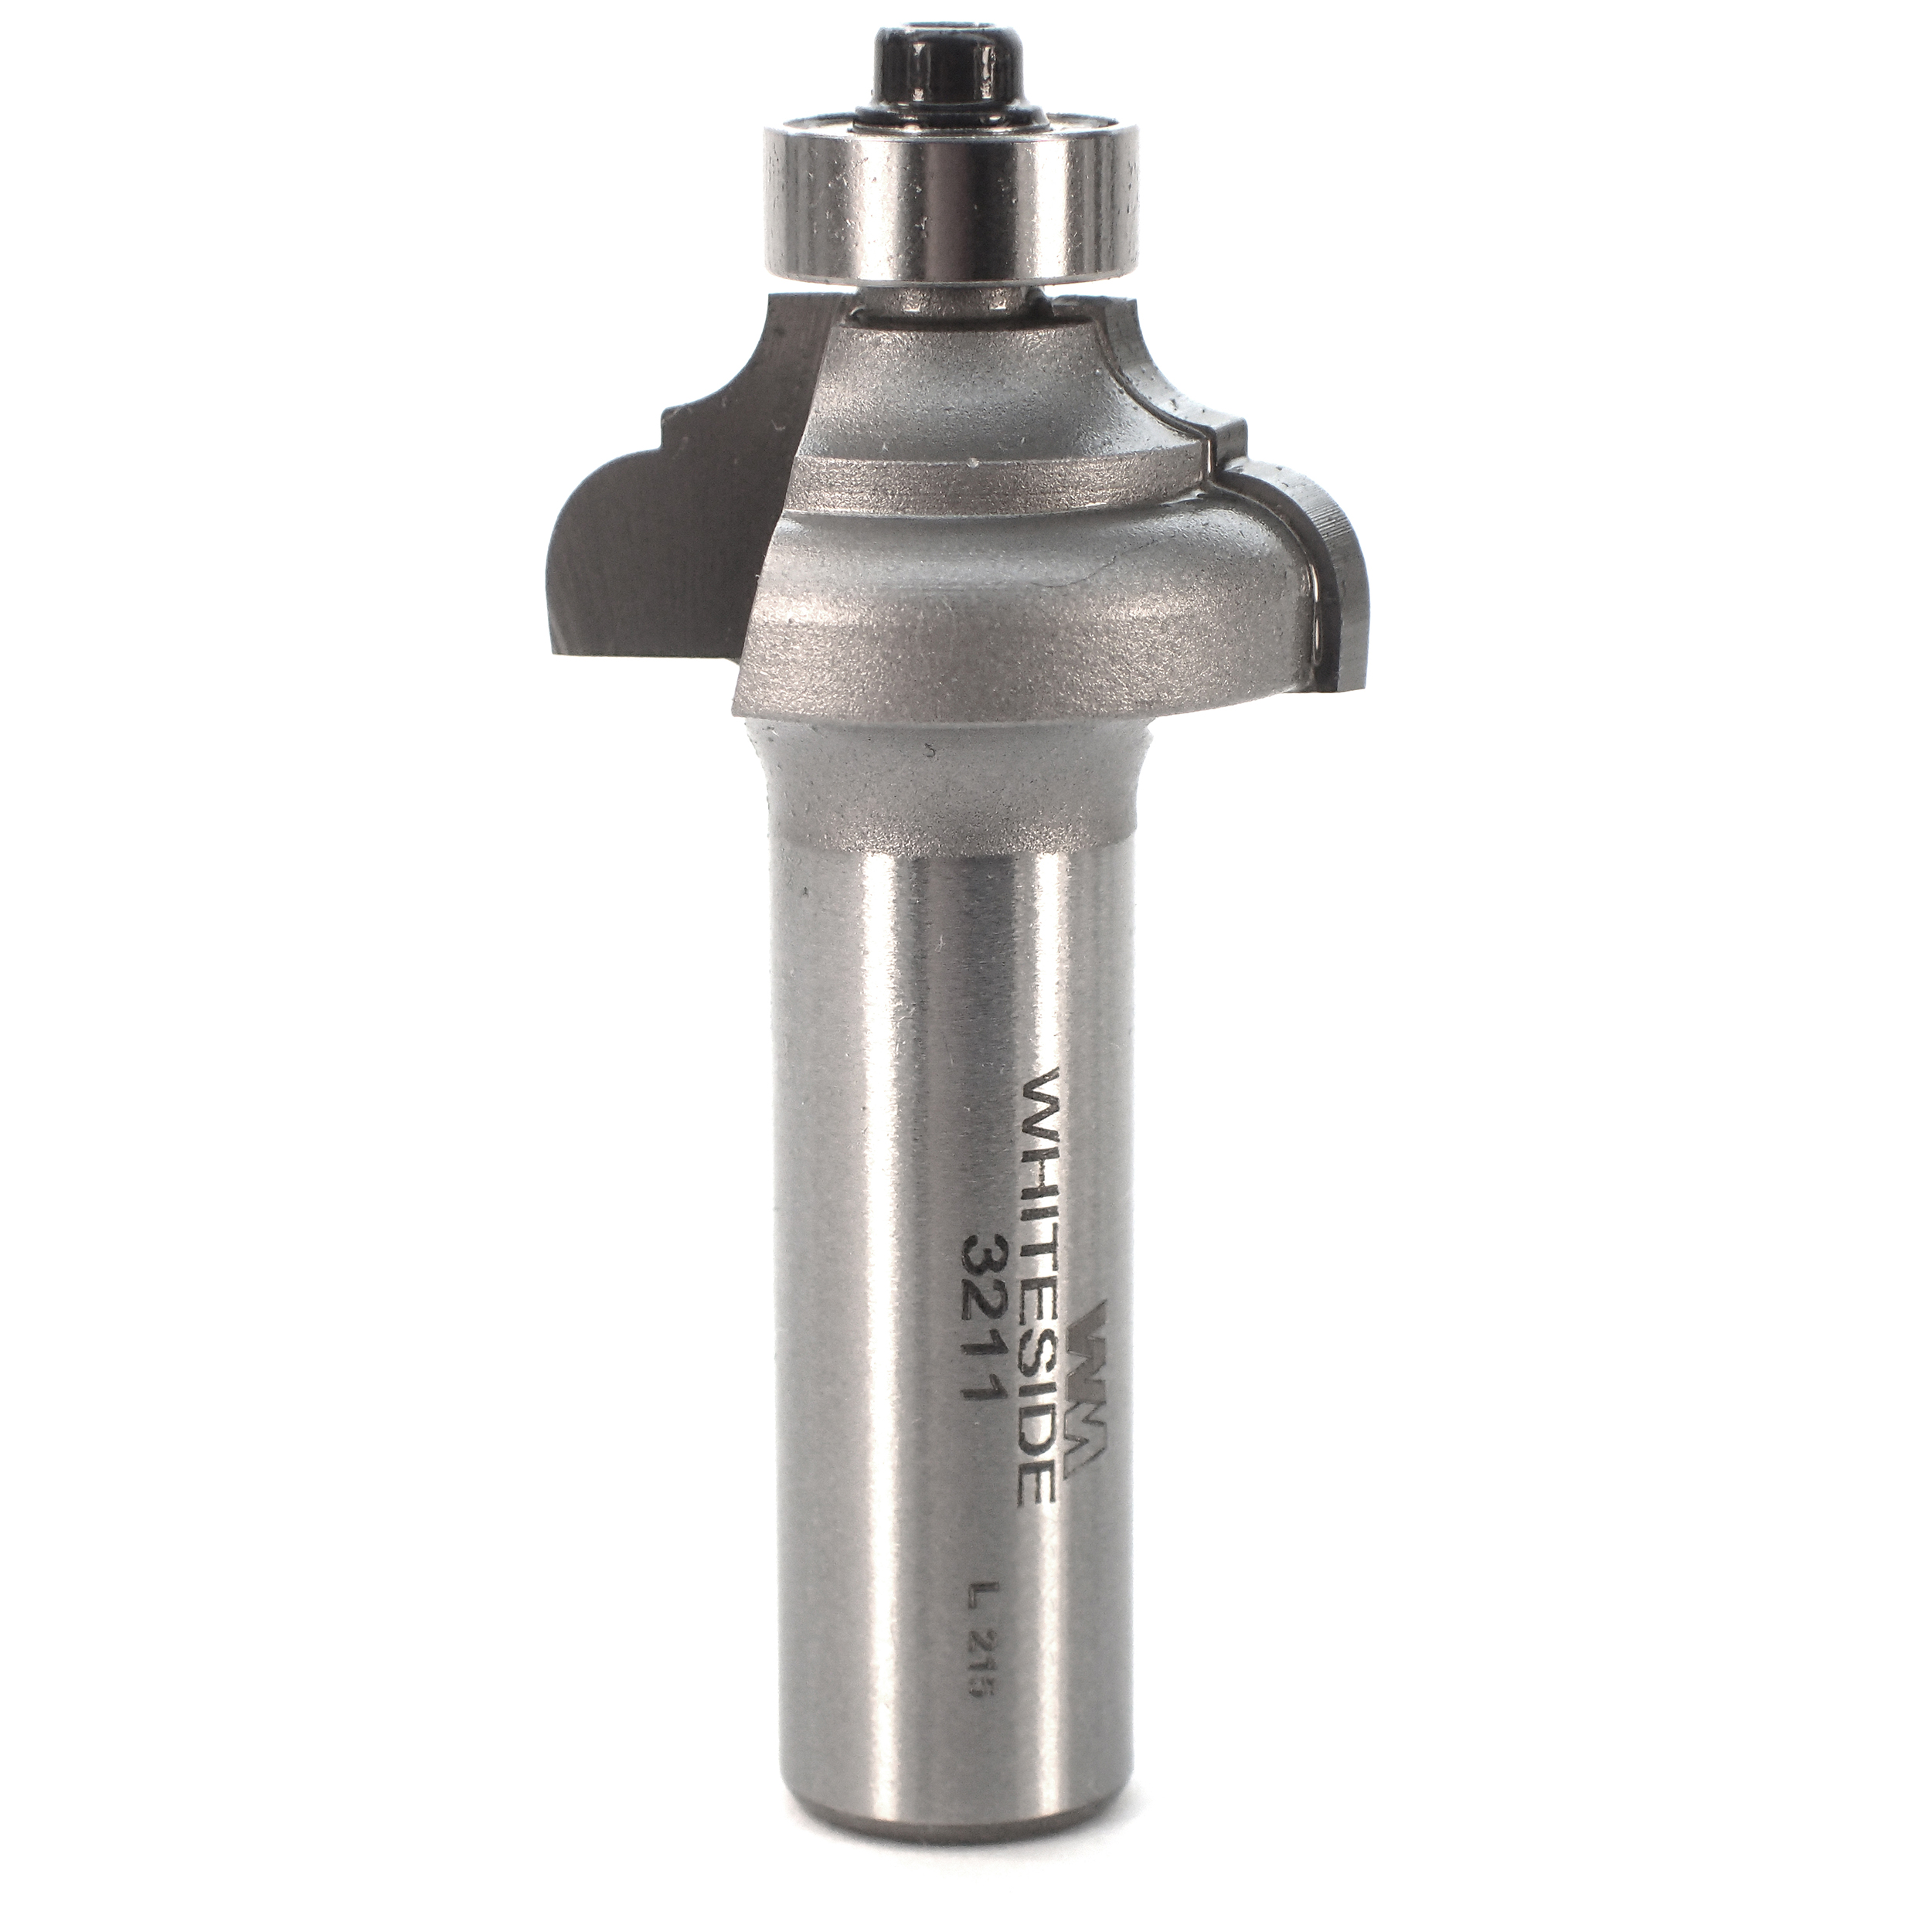 3211 Cove And Bead Router Bit 1/2